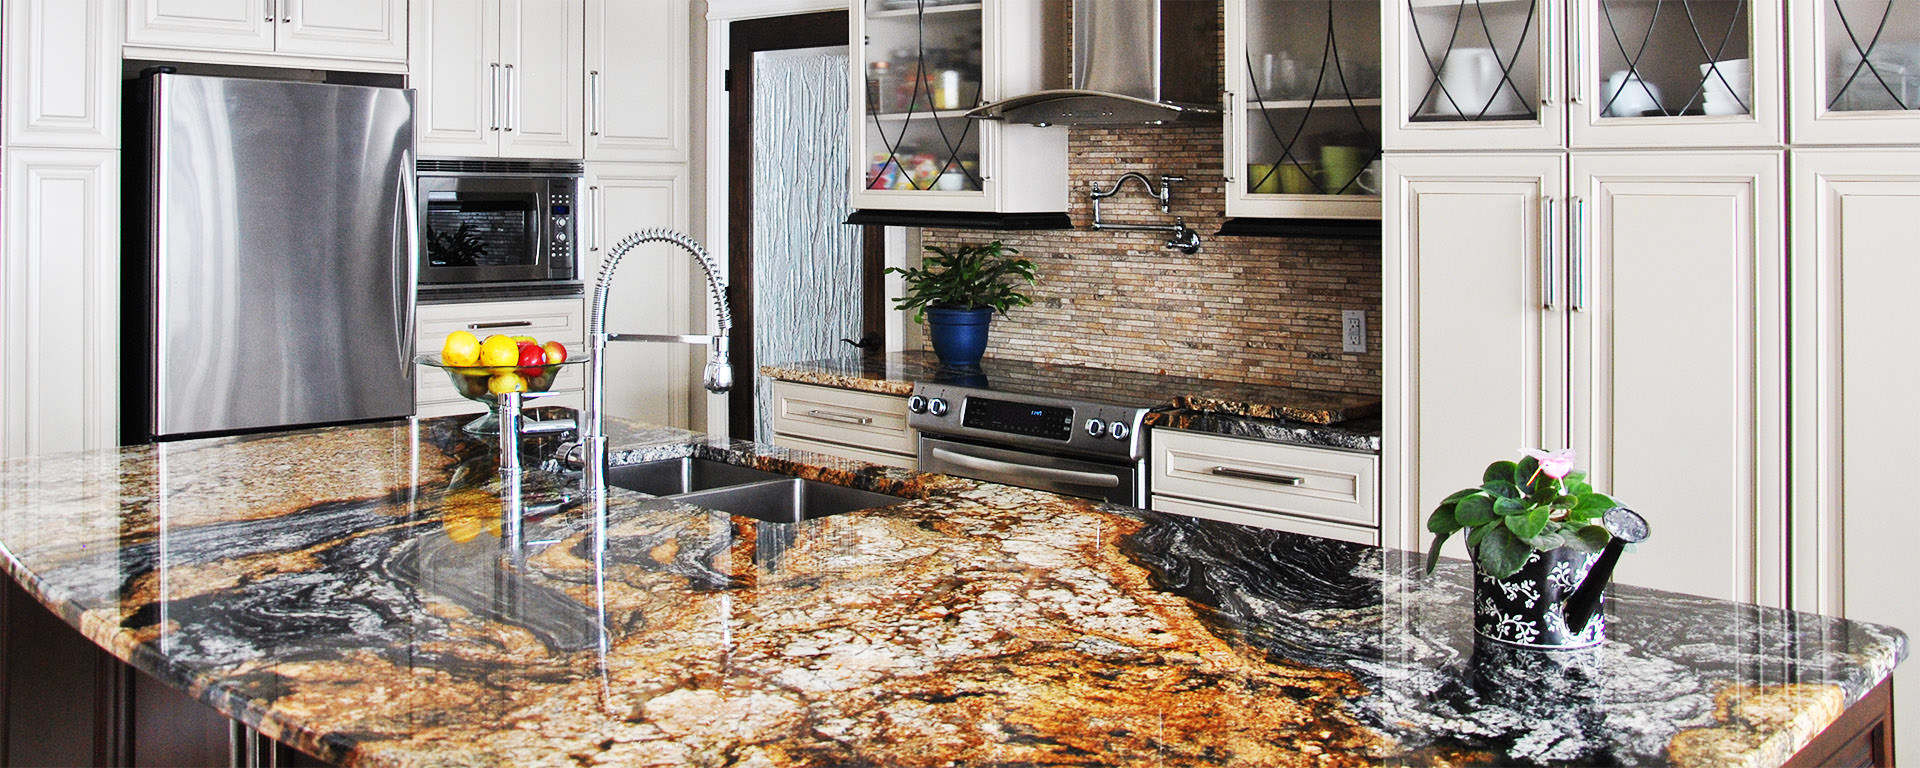 Granite Kitchen Slab : granite kitchen countertops mascarellor granite kitchen countertops ...